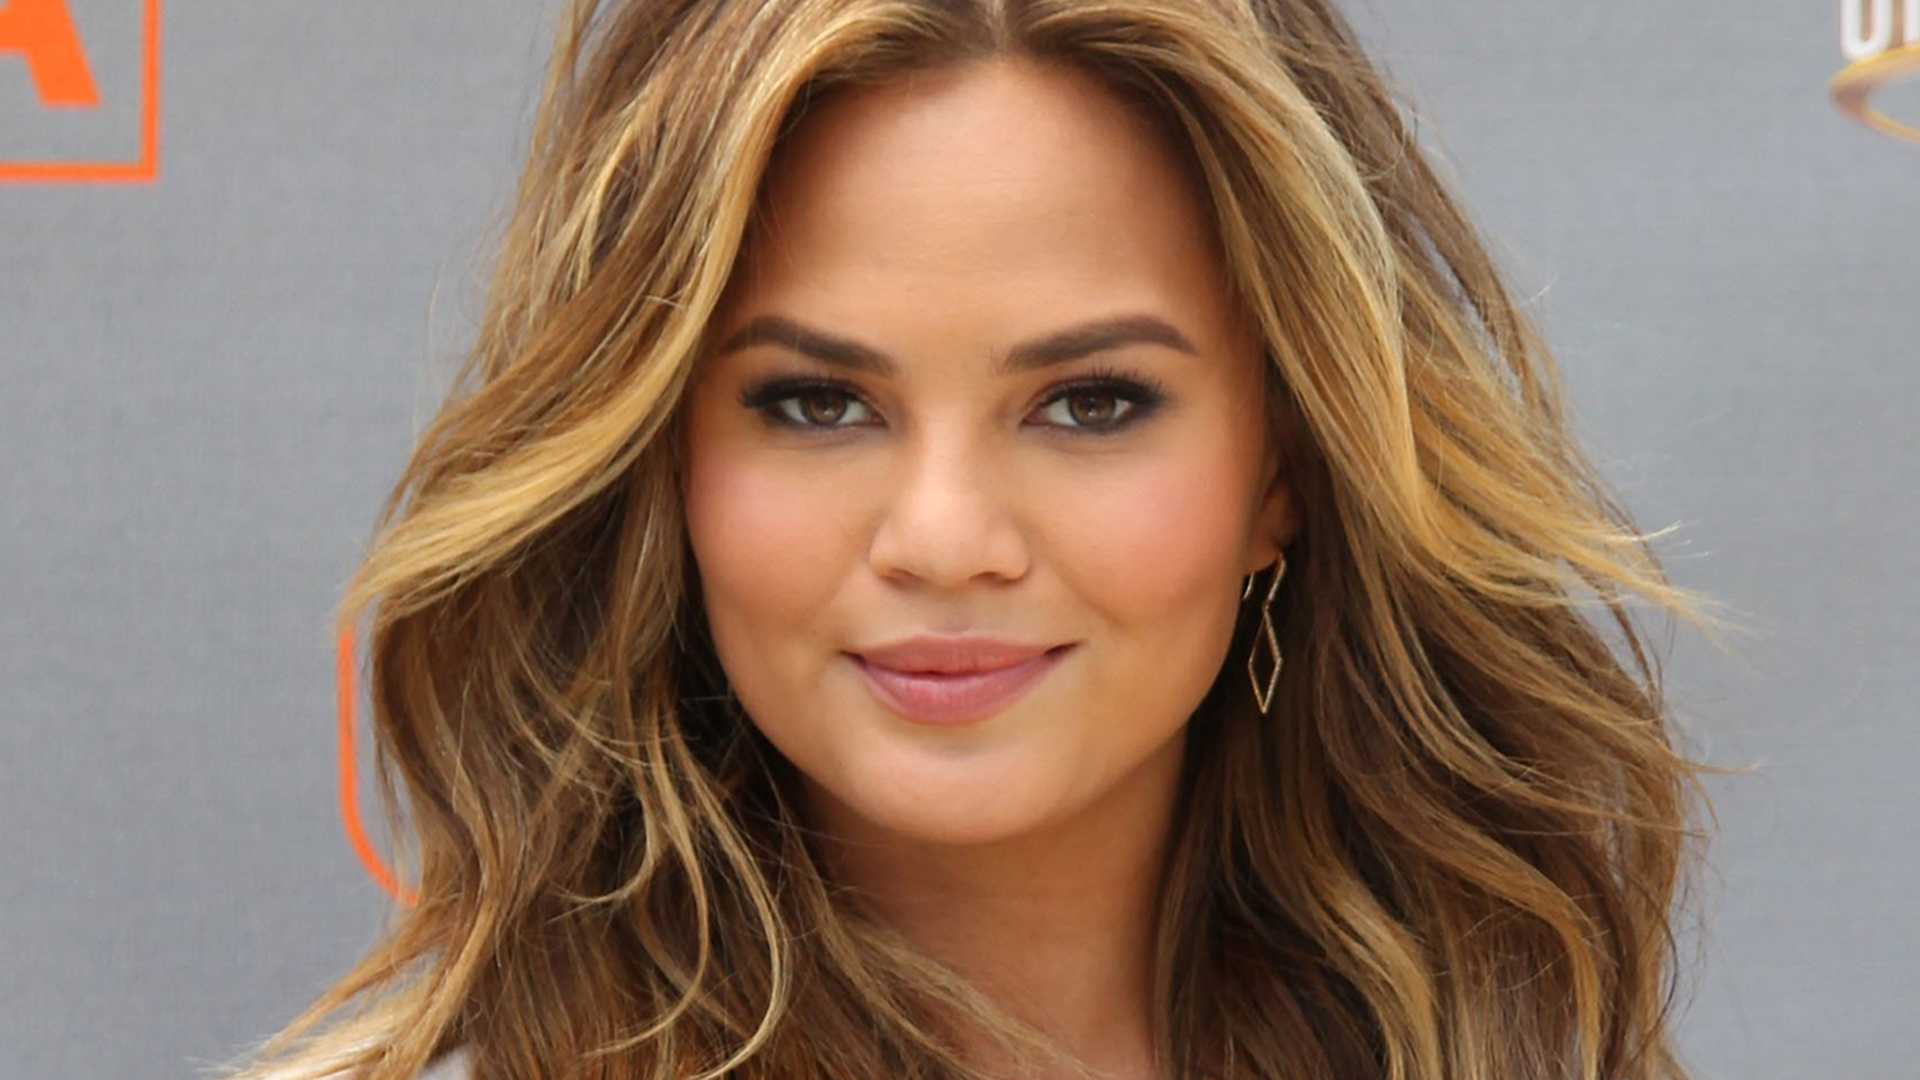 Chrissy Teigen Opens Up About Her Plastic Surgery, Says Everything About Her Is Fake Except Cheek